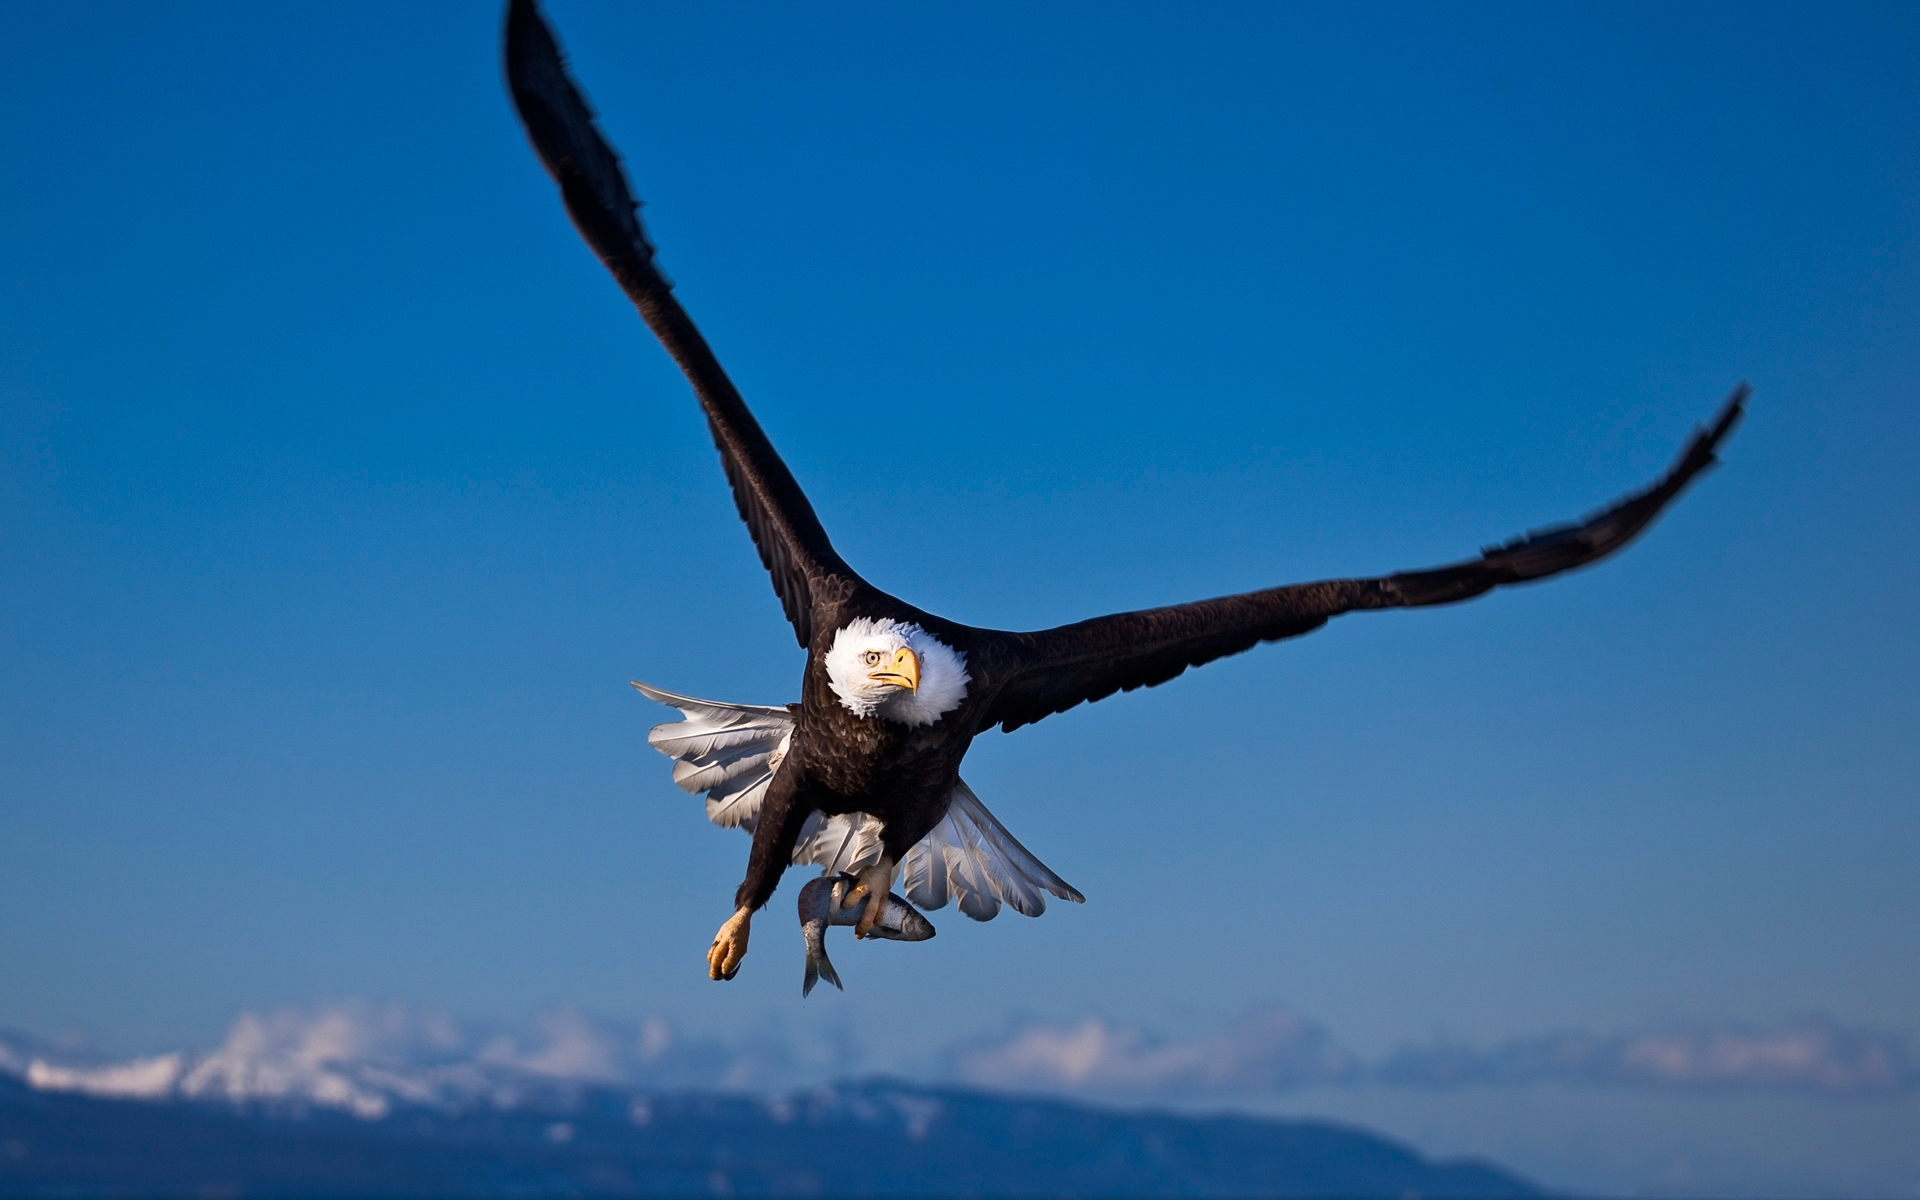 36028 download wallpaper Animals, Birds, Eagles screensavers and pictures for free